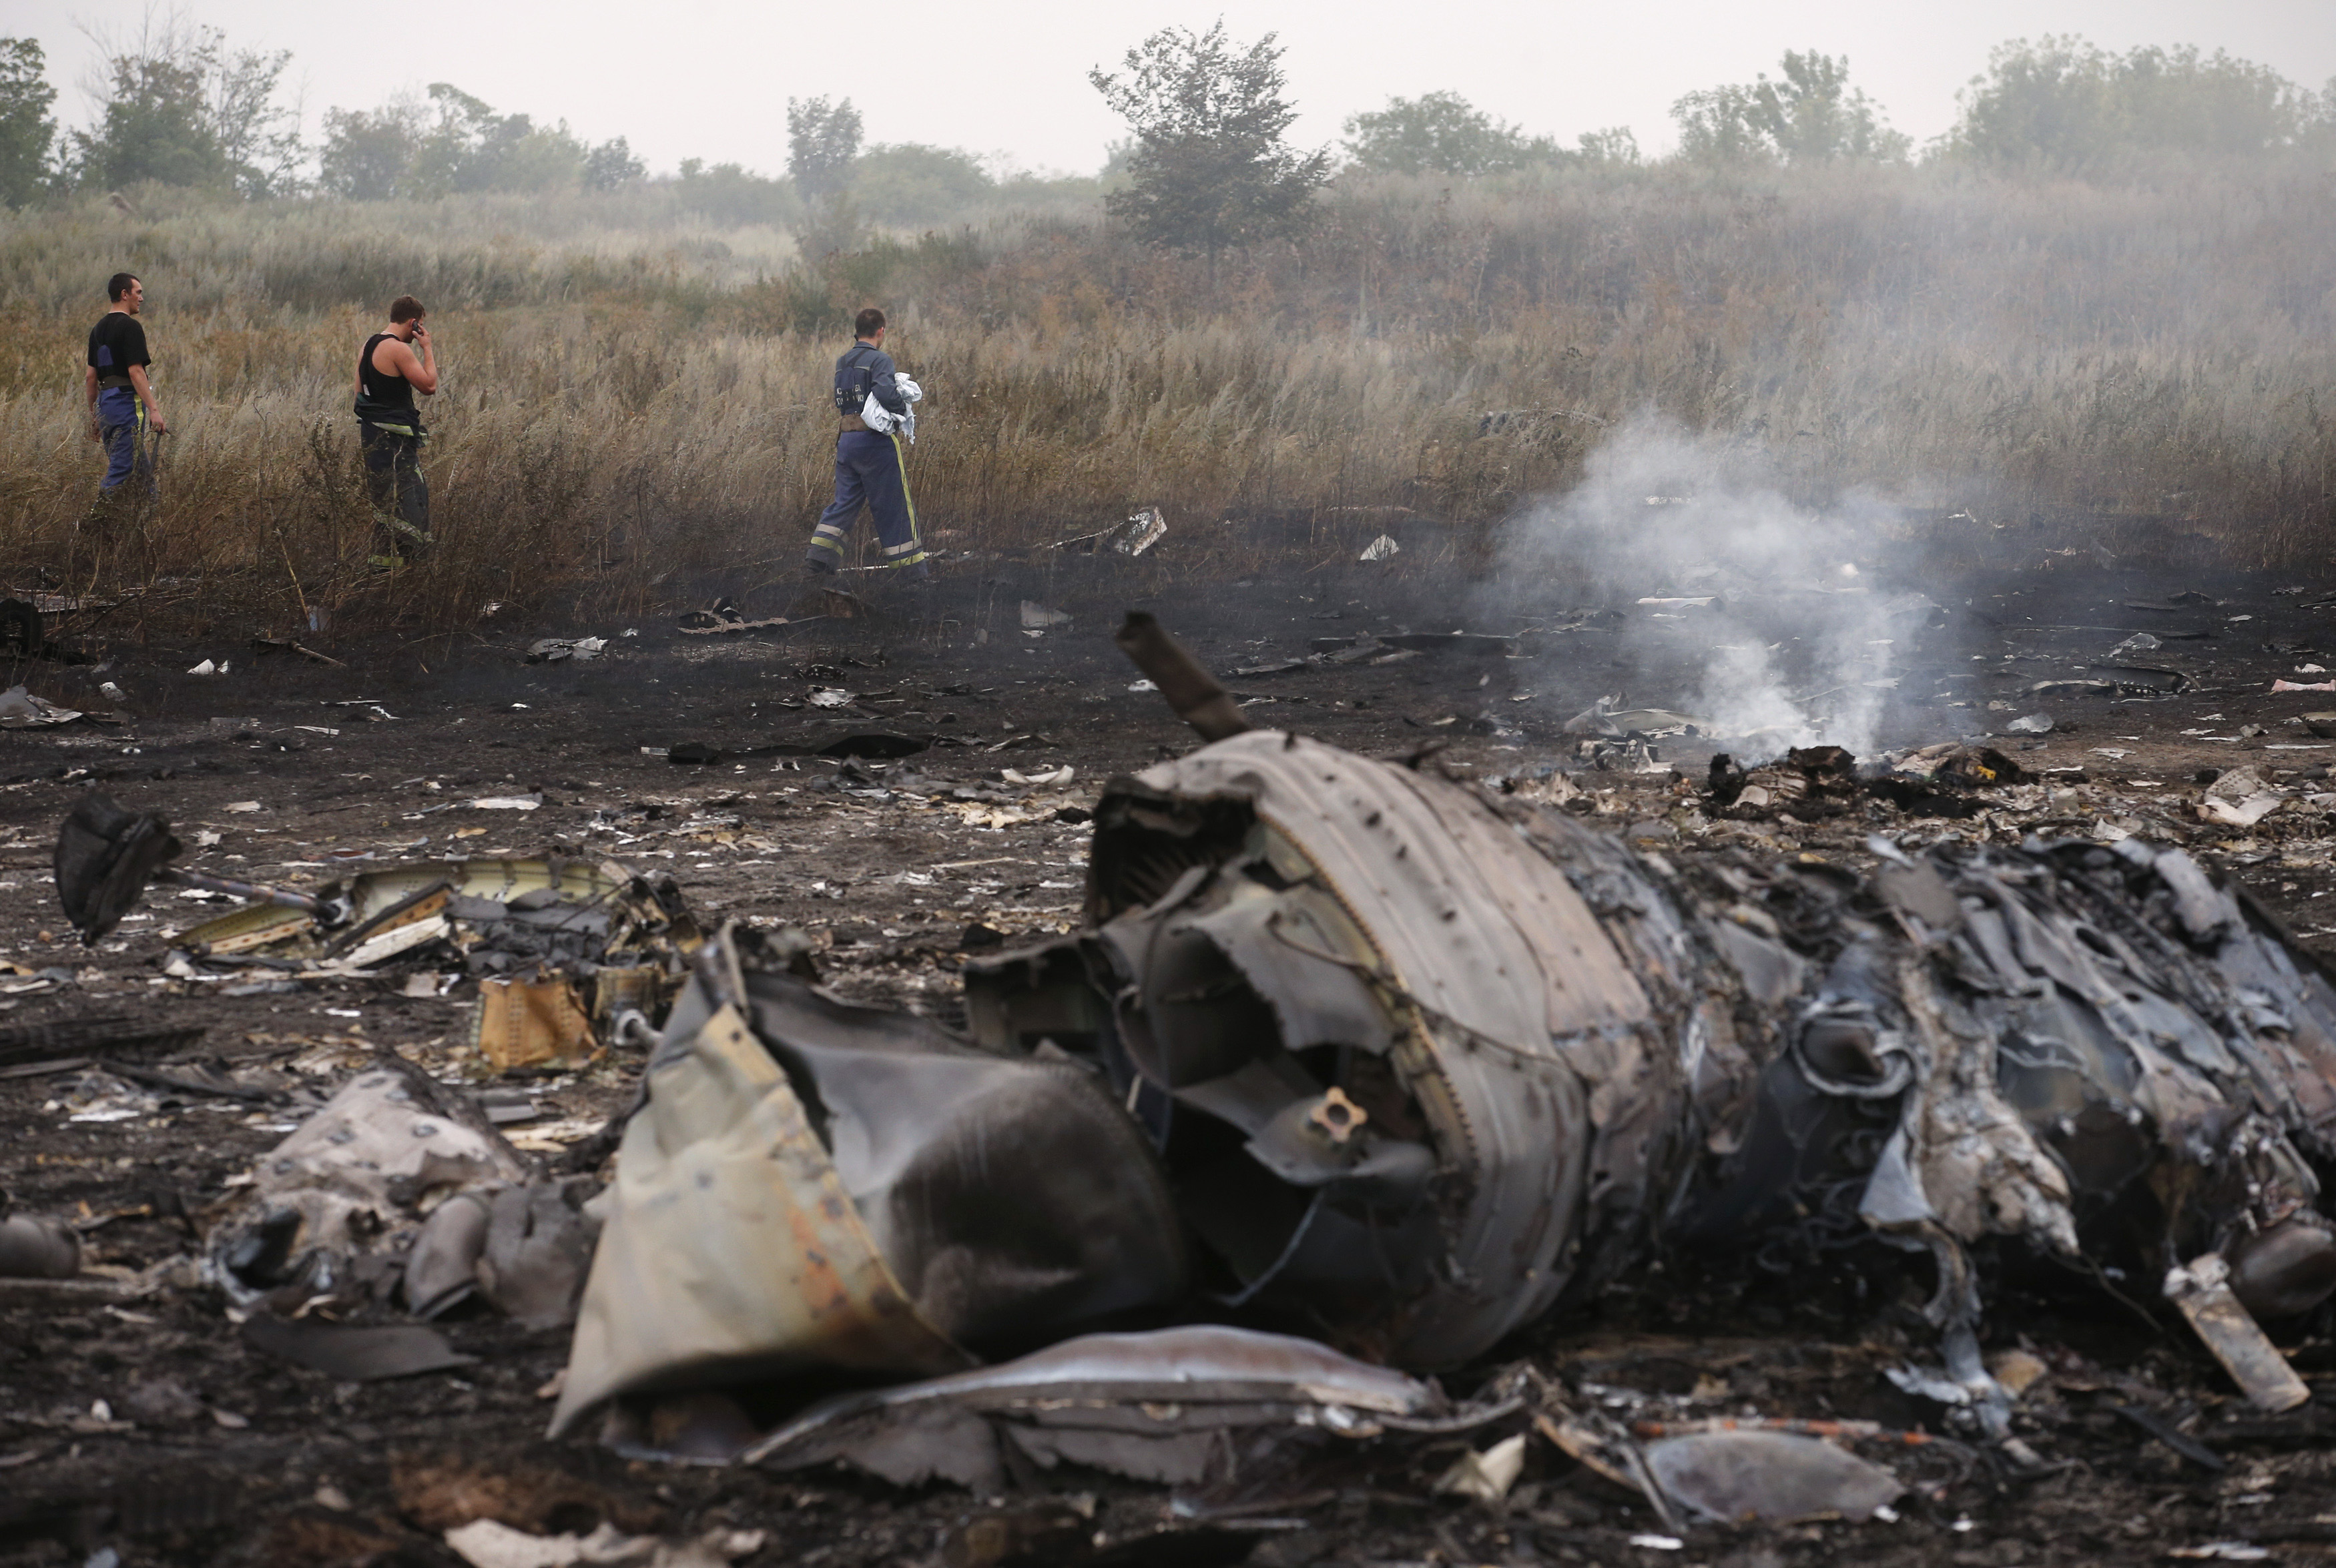 Emergencies Ministry members walk at the site of a Malaysia Airlines Boeing 777 plane crash, MH17, near the settlement of Grabovo in the Donetsk region, on July 17, 2014.